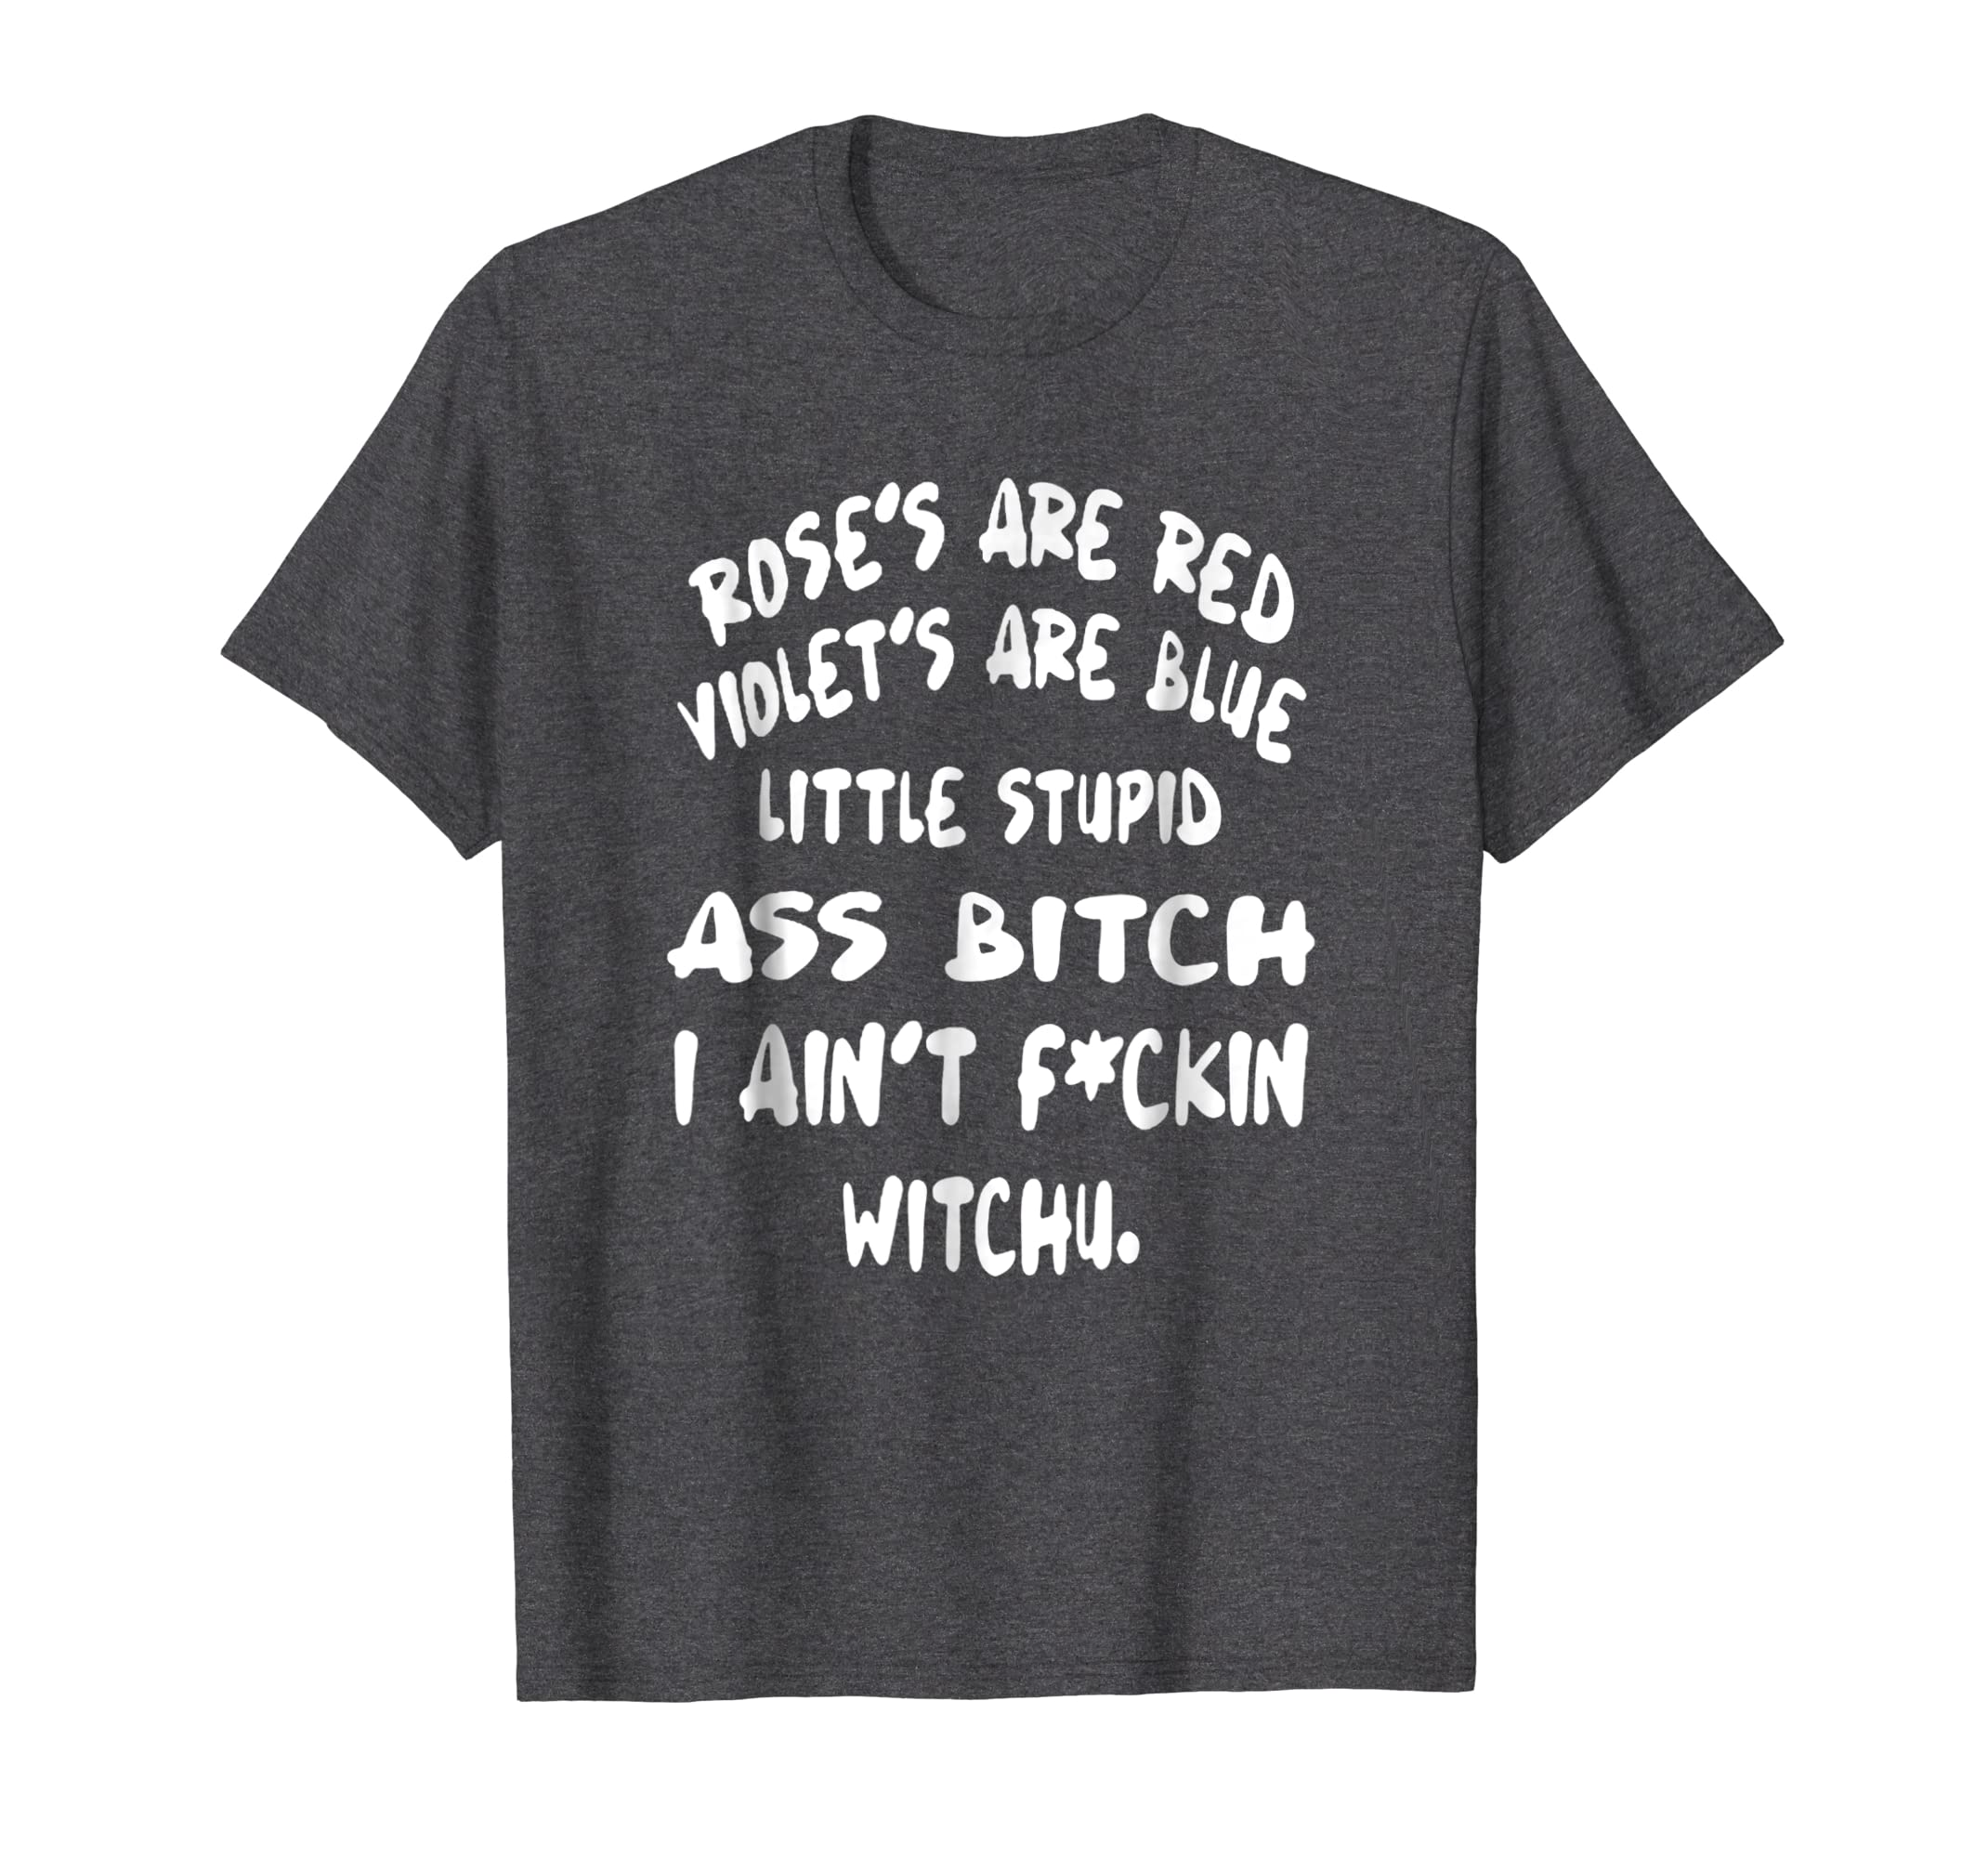 e08febd01 Amazon.com: Roses Are Red Violets Are Blue Little Stupid Ass Bitch Shirt:  Clothing